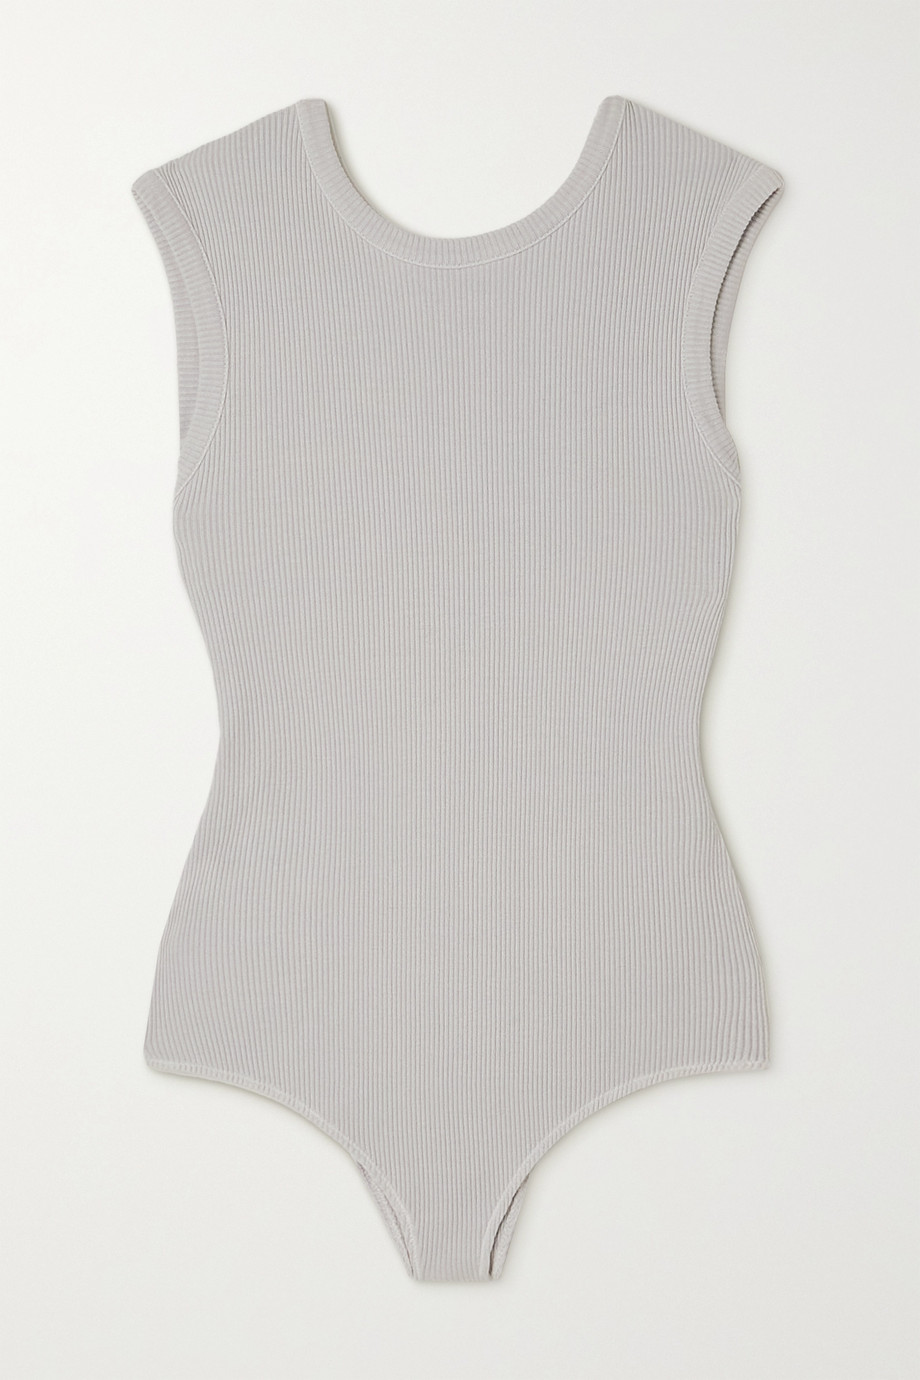 AGOLDE + NET SUSTAIN Sutton ribbed organic cotton bodysuit